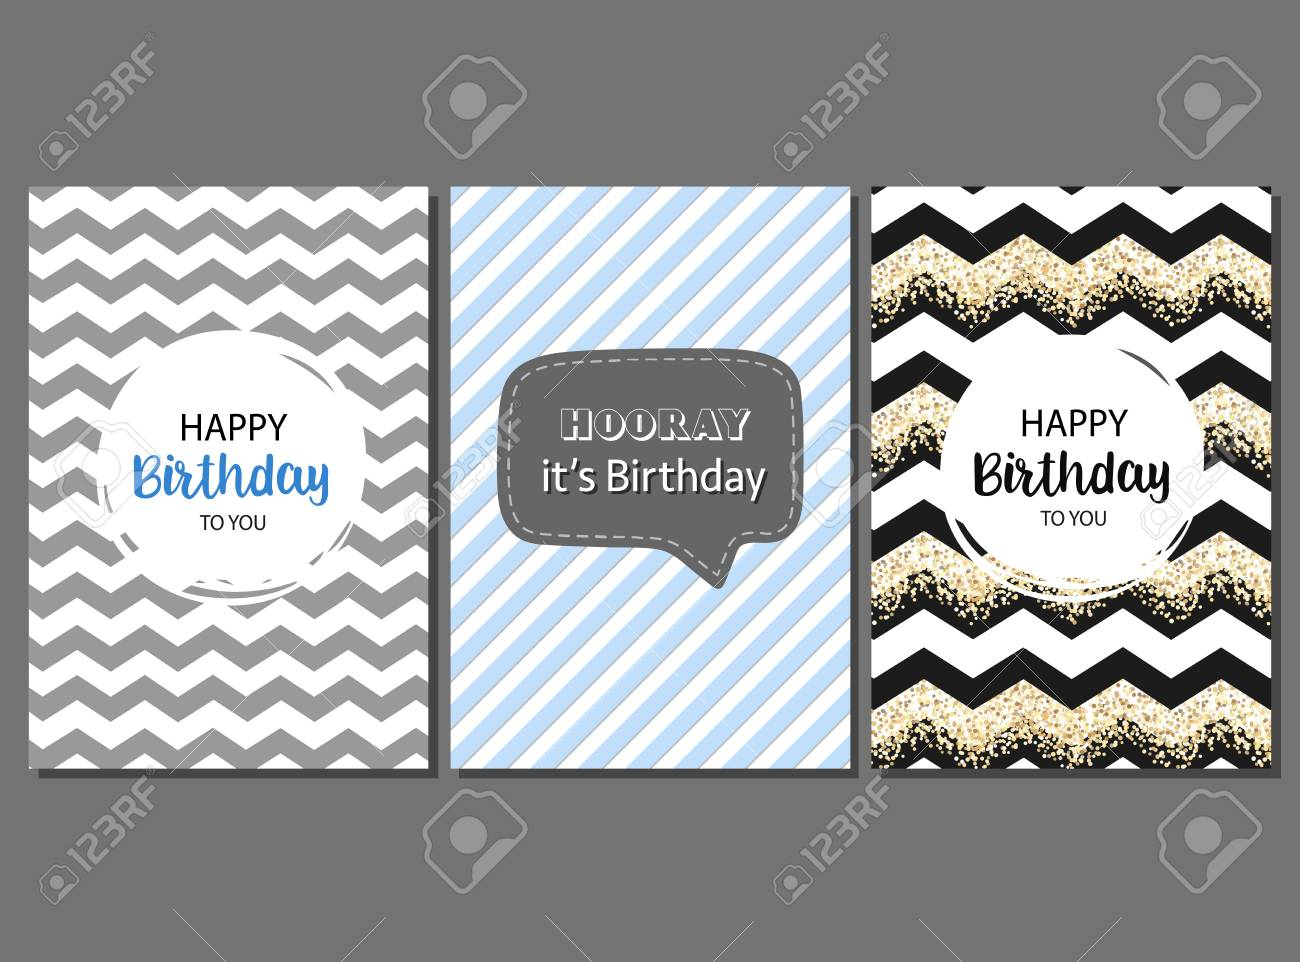 Set Of Birthday Cards For Male Celebrant With Geometric Stripes And Cute Pattern Stock Vector